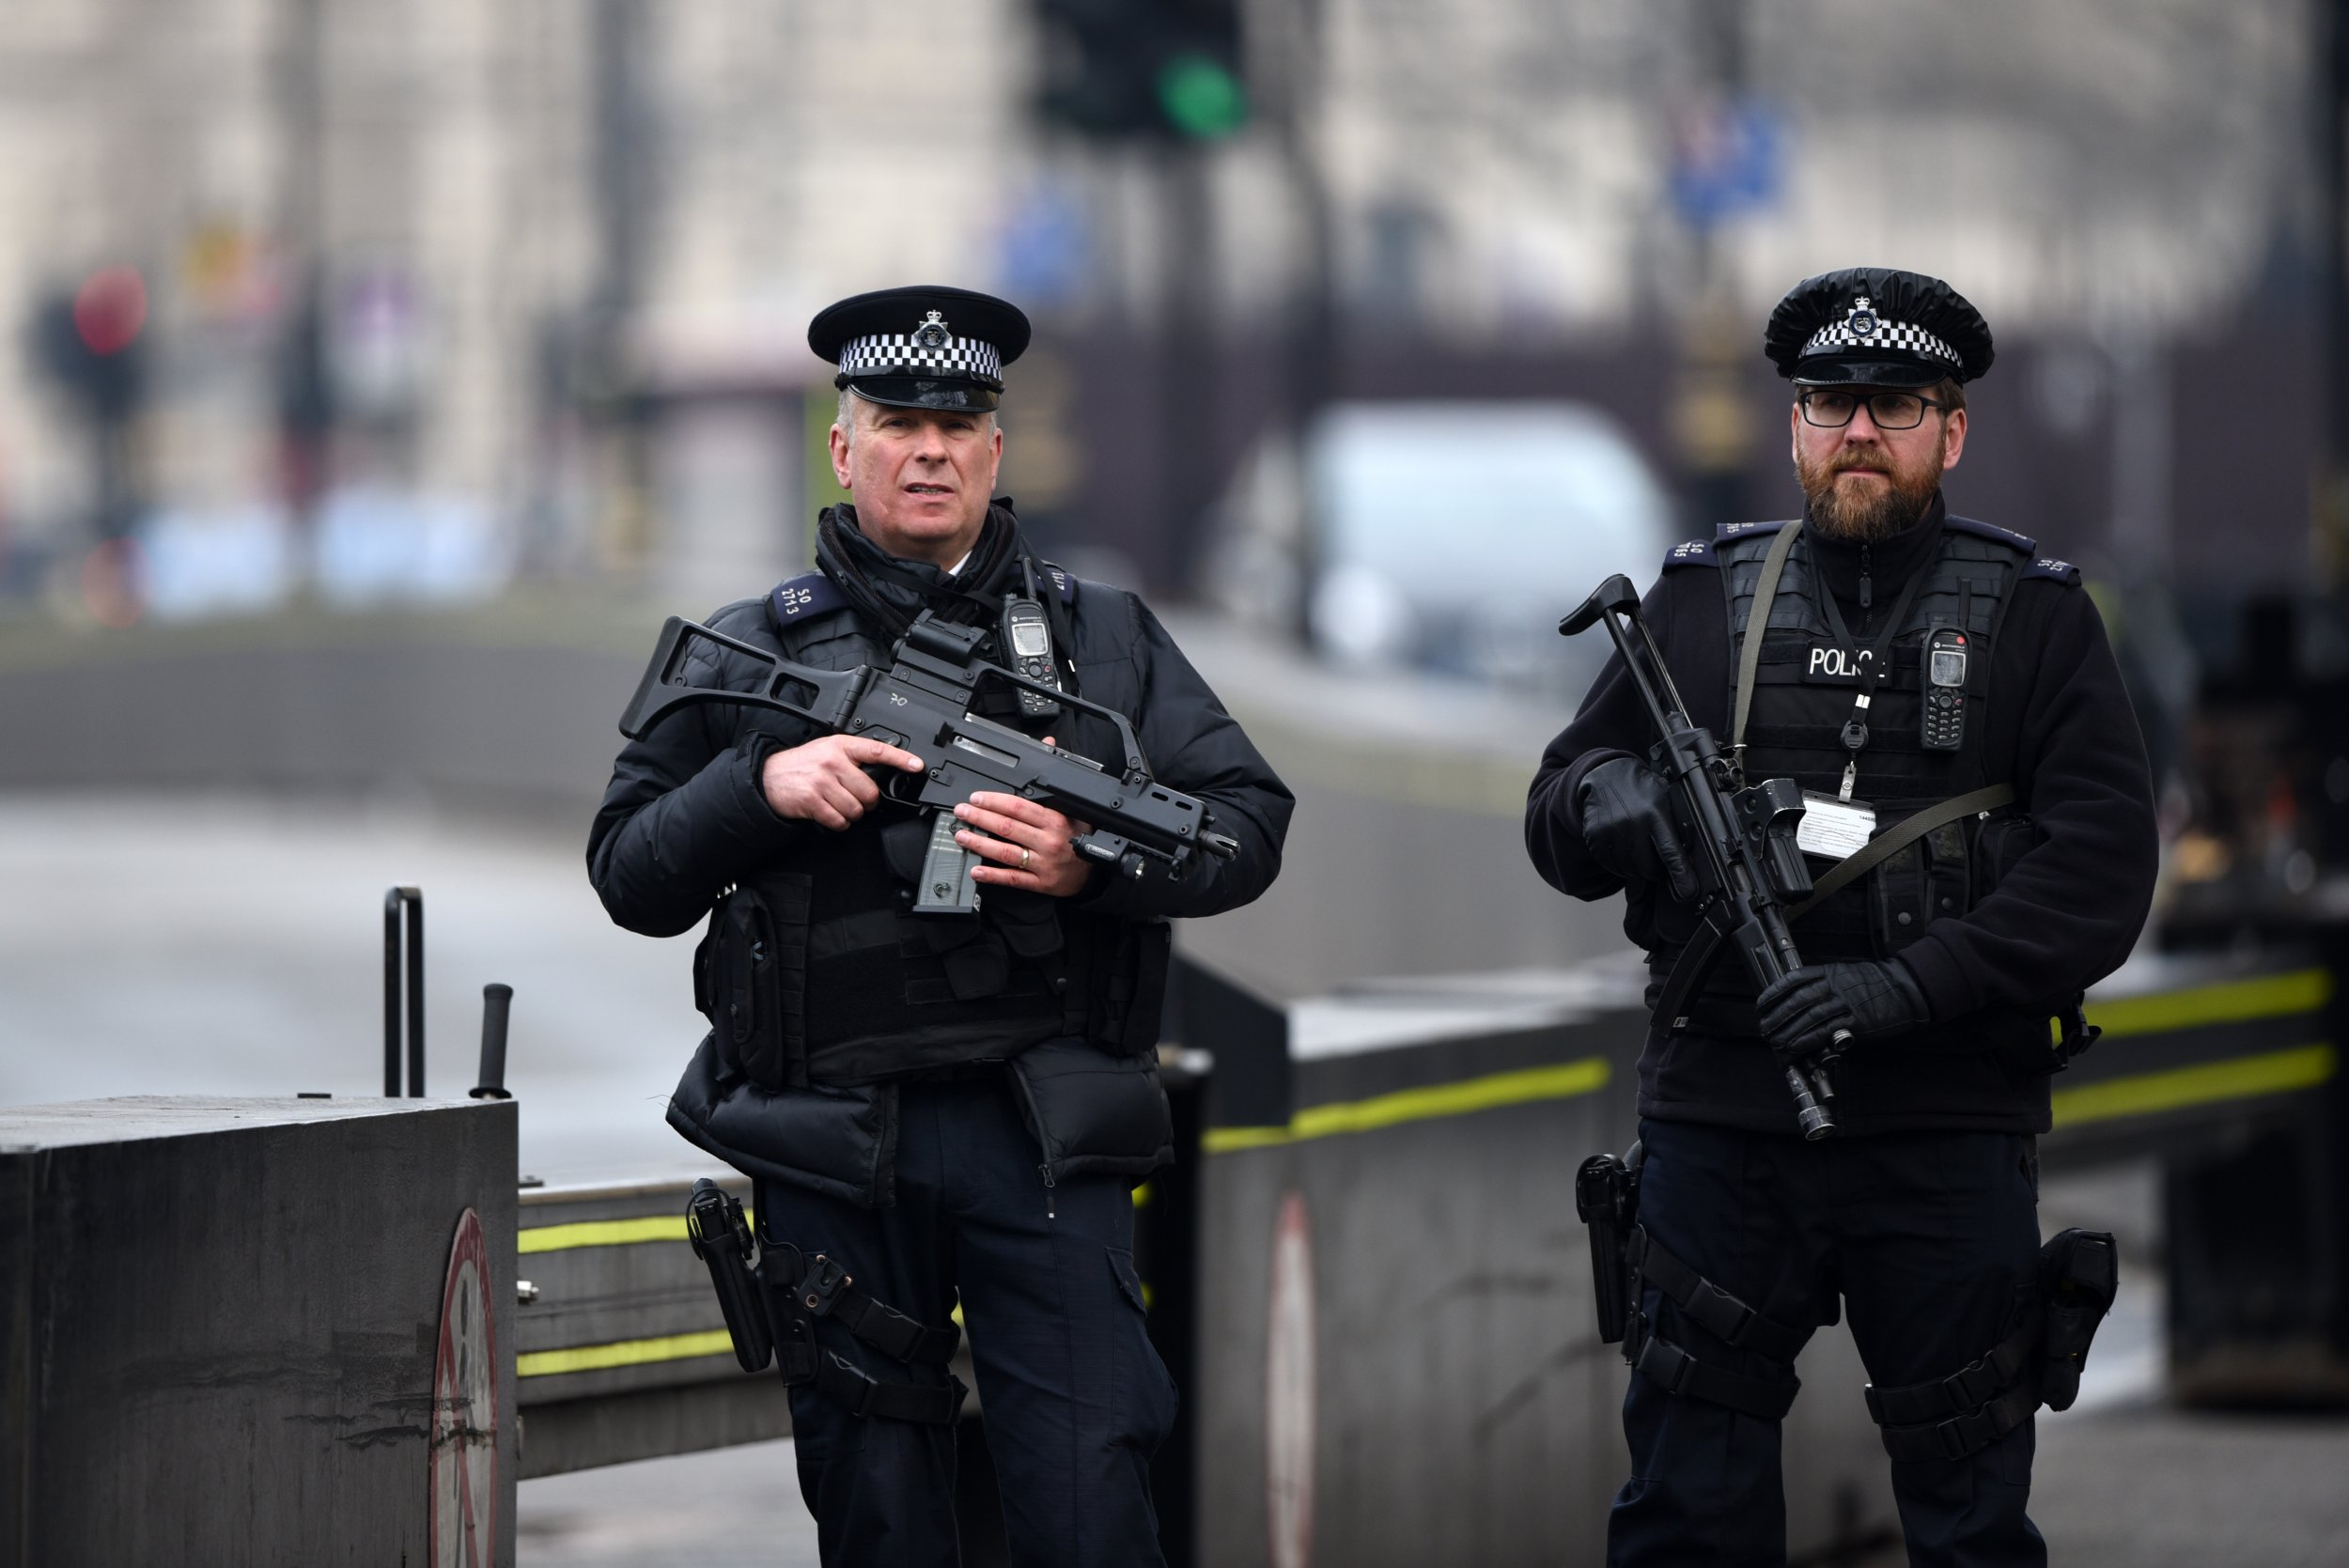 London police forces